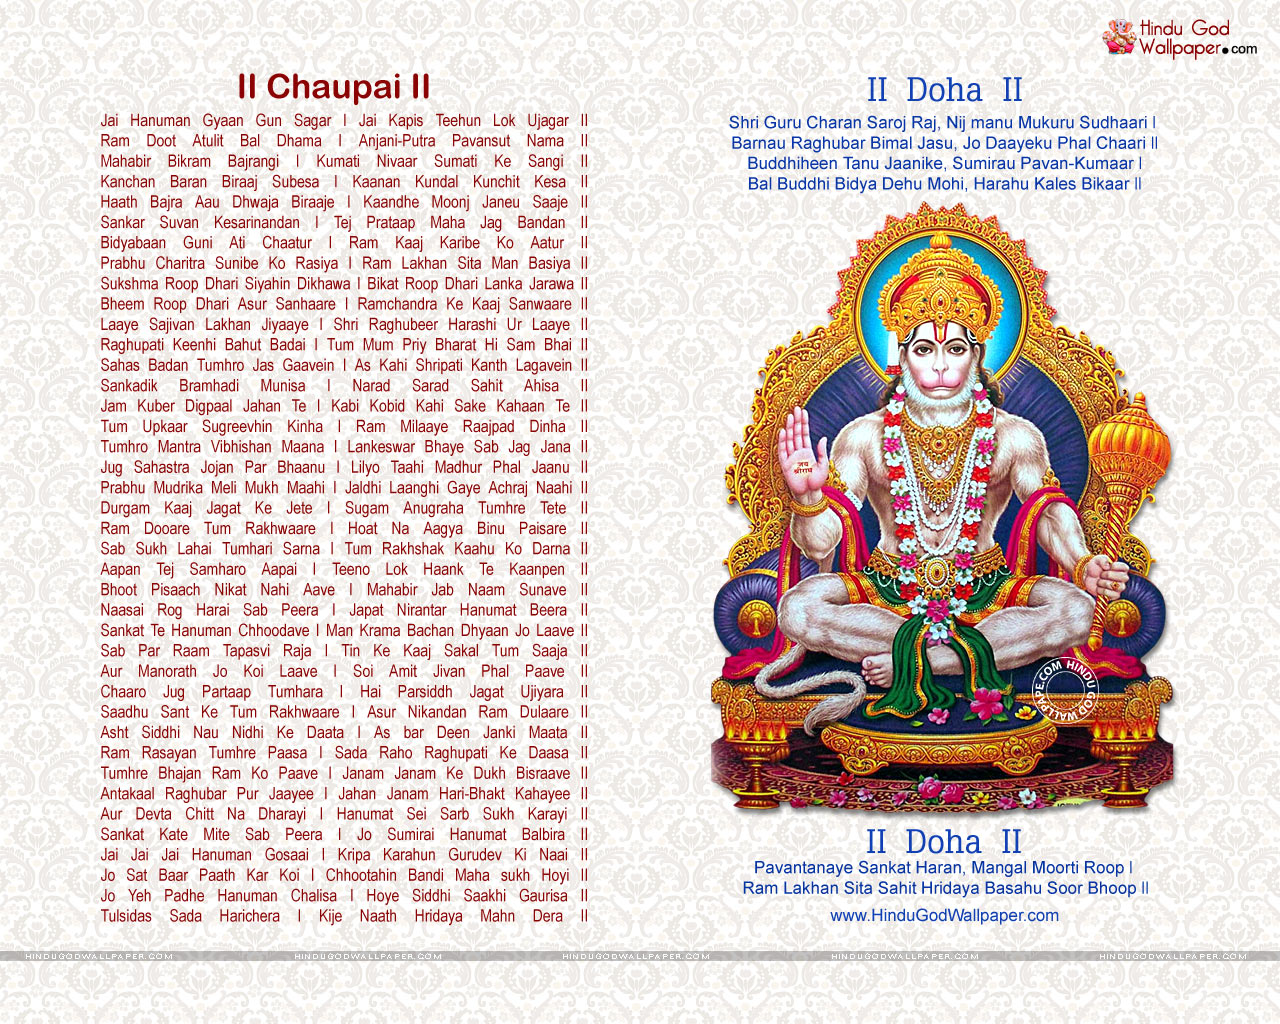 All about mp3 players: free download hanuman chalisa aarti format.